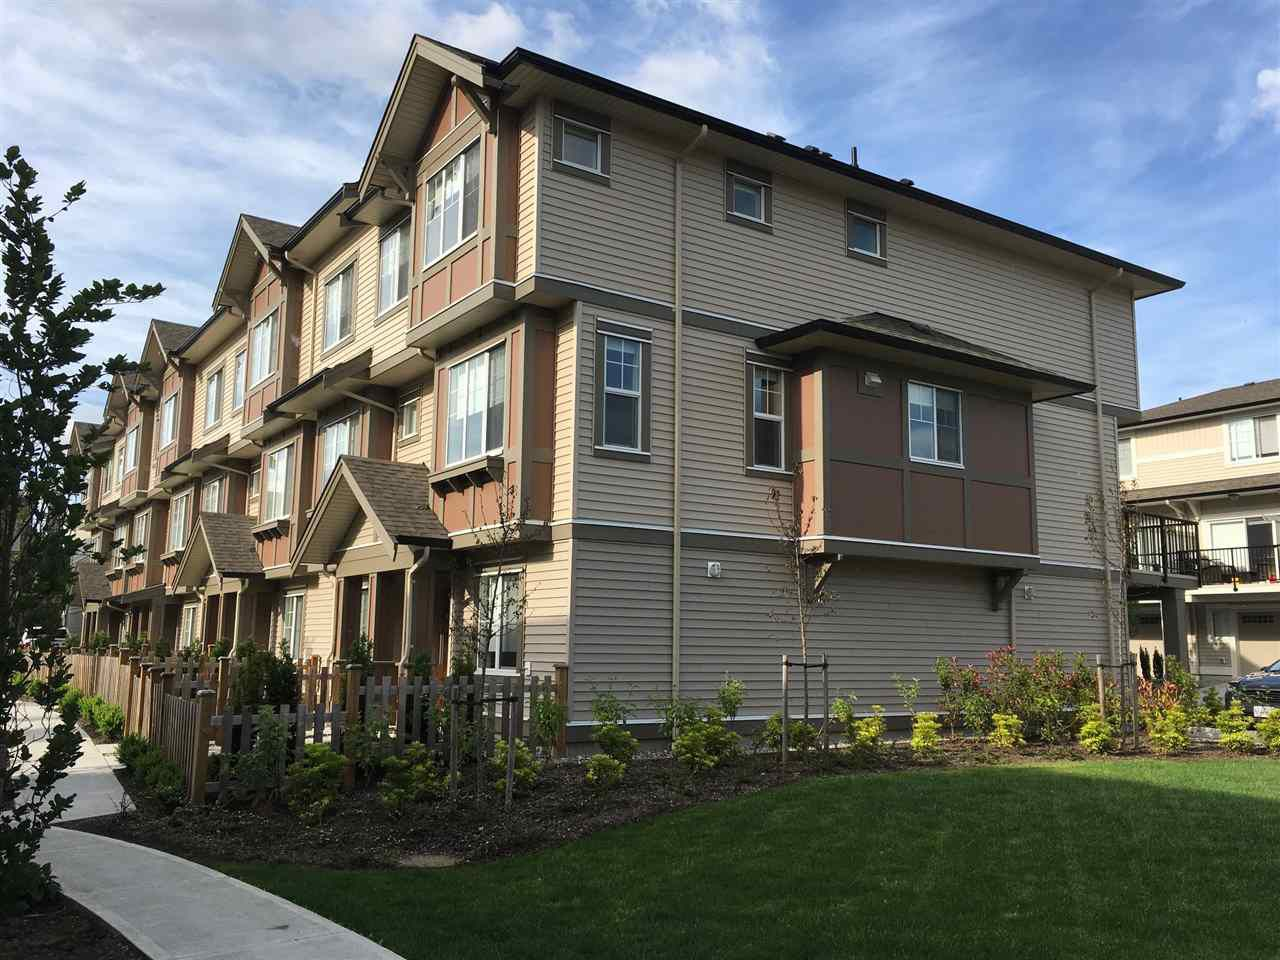 """Main Photo: 145 10151 240 Street in Maple Ridge: Albion Townhouse for sale in """"Albion Station"""" : MLS®# R2173446"""